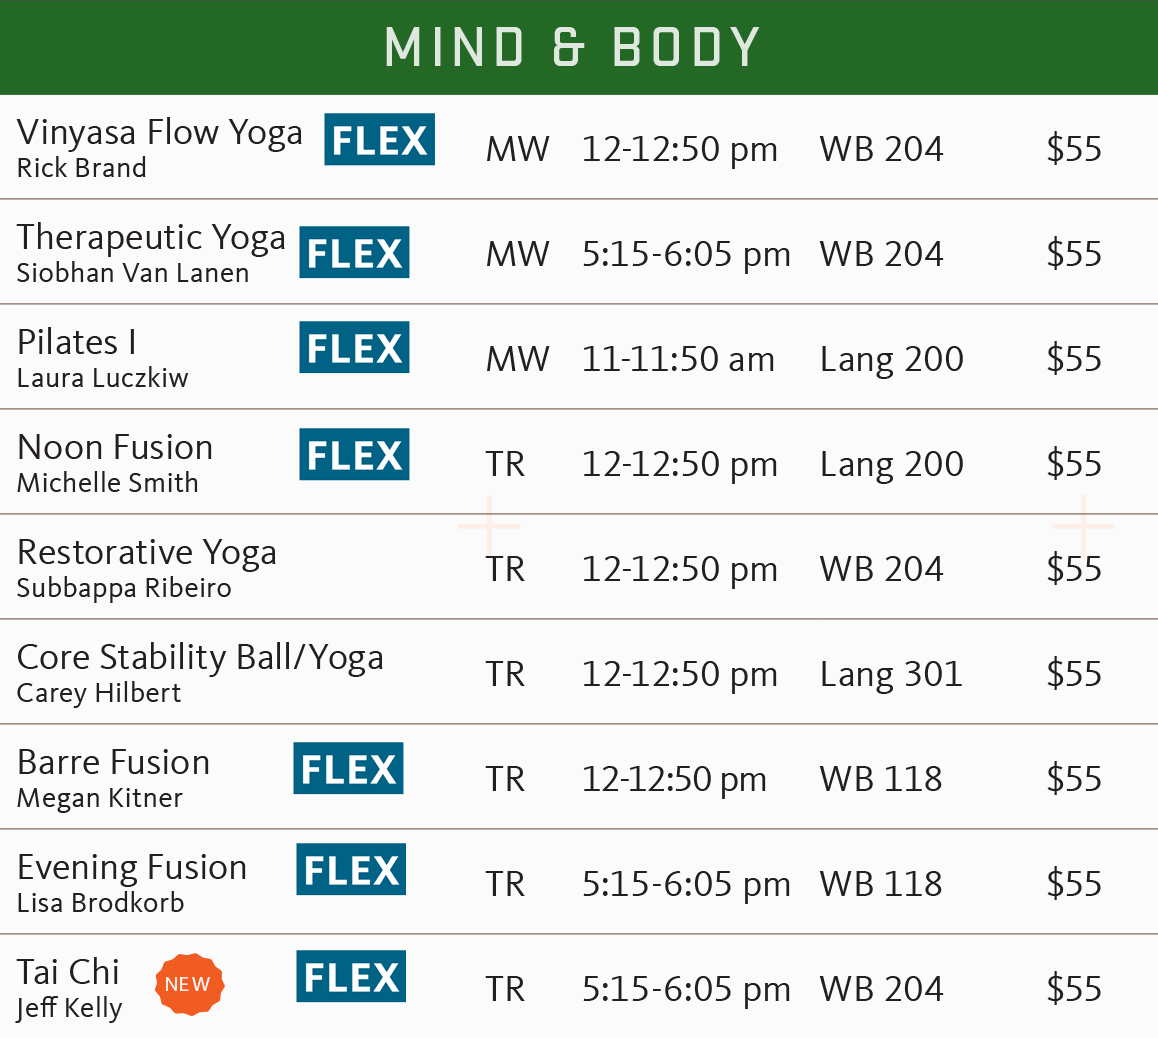 FSF Spring 2018 mind and body schedule